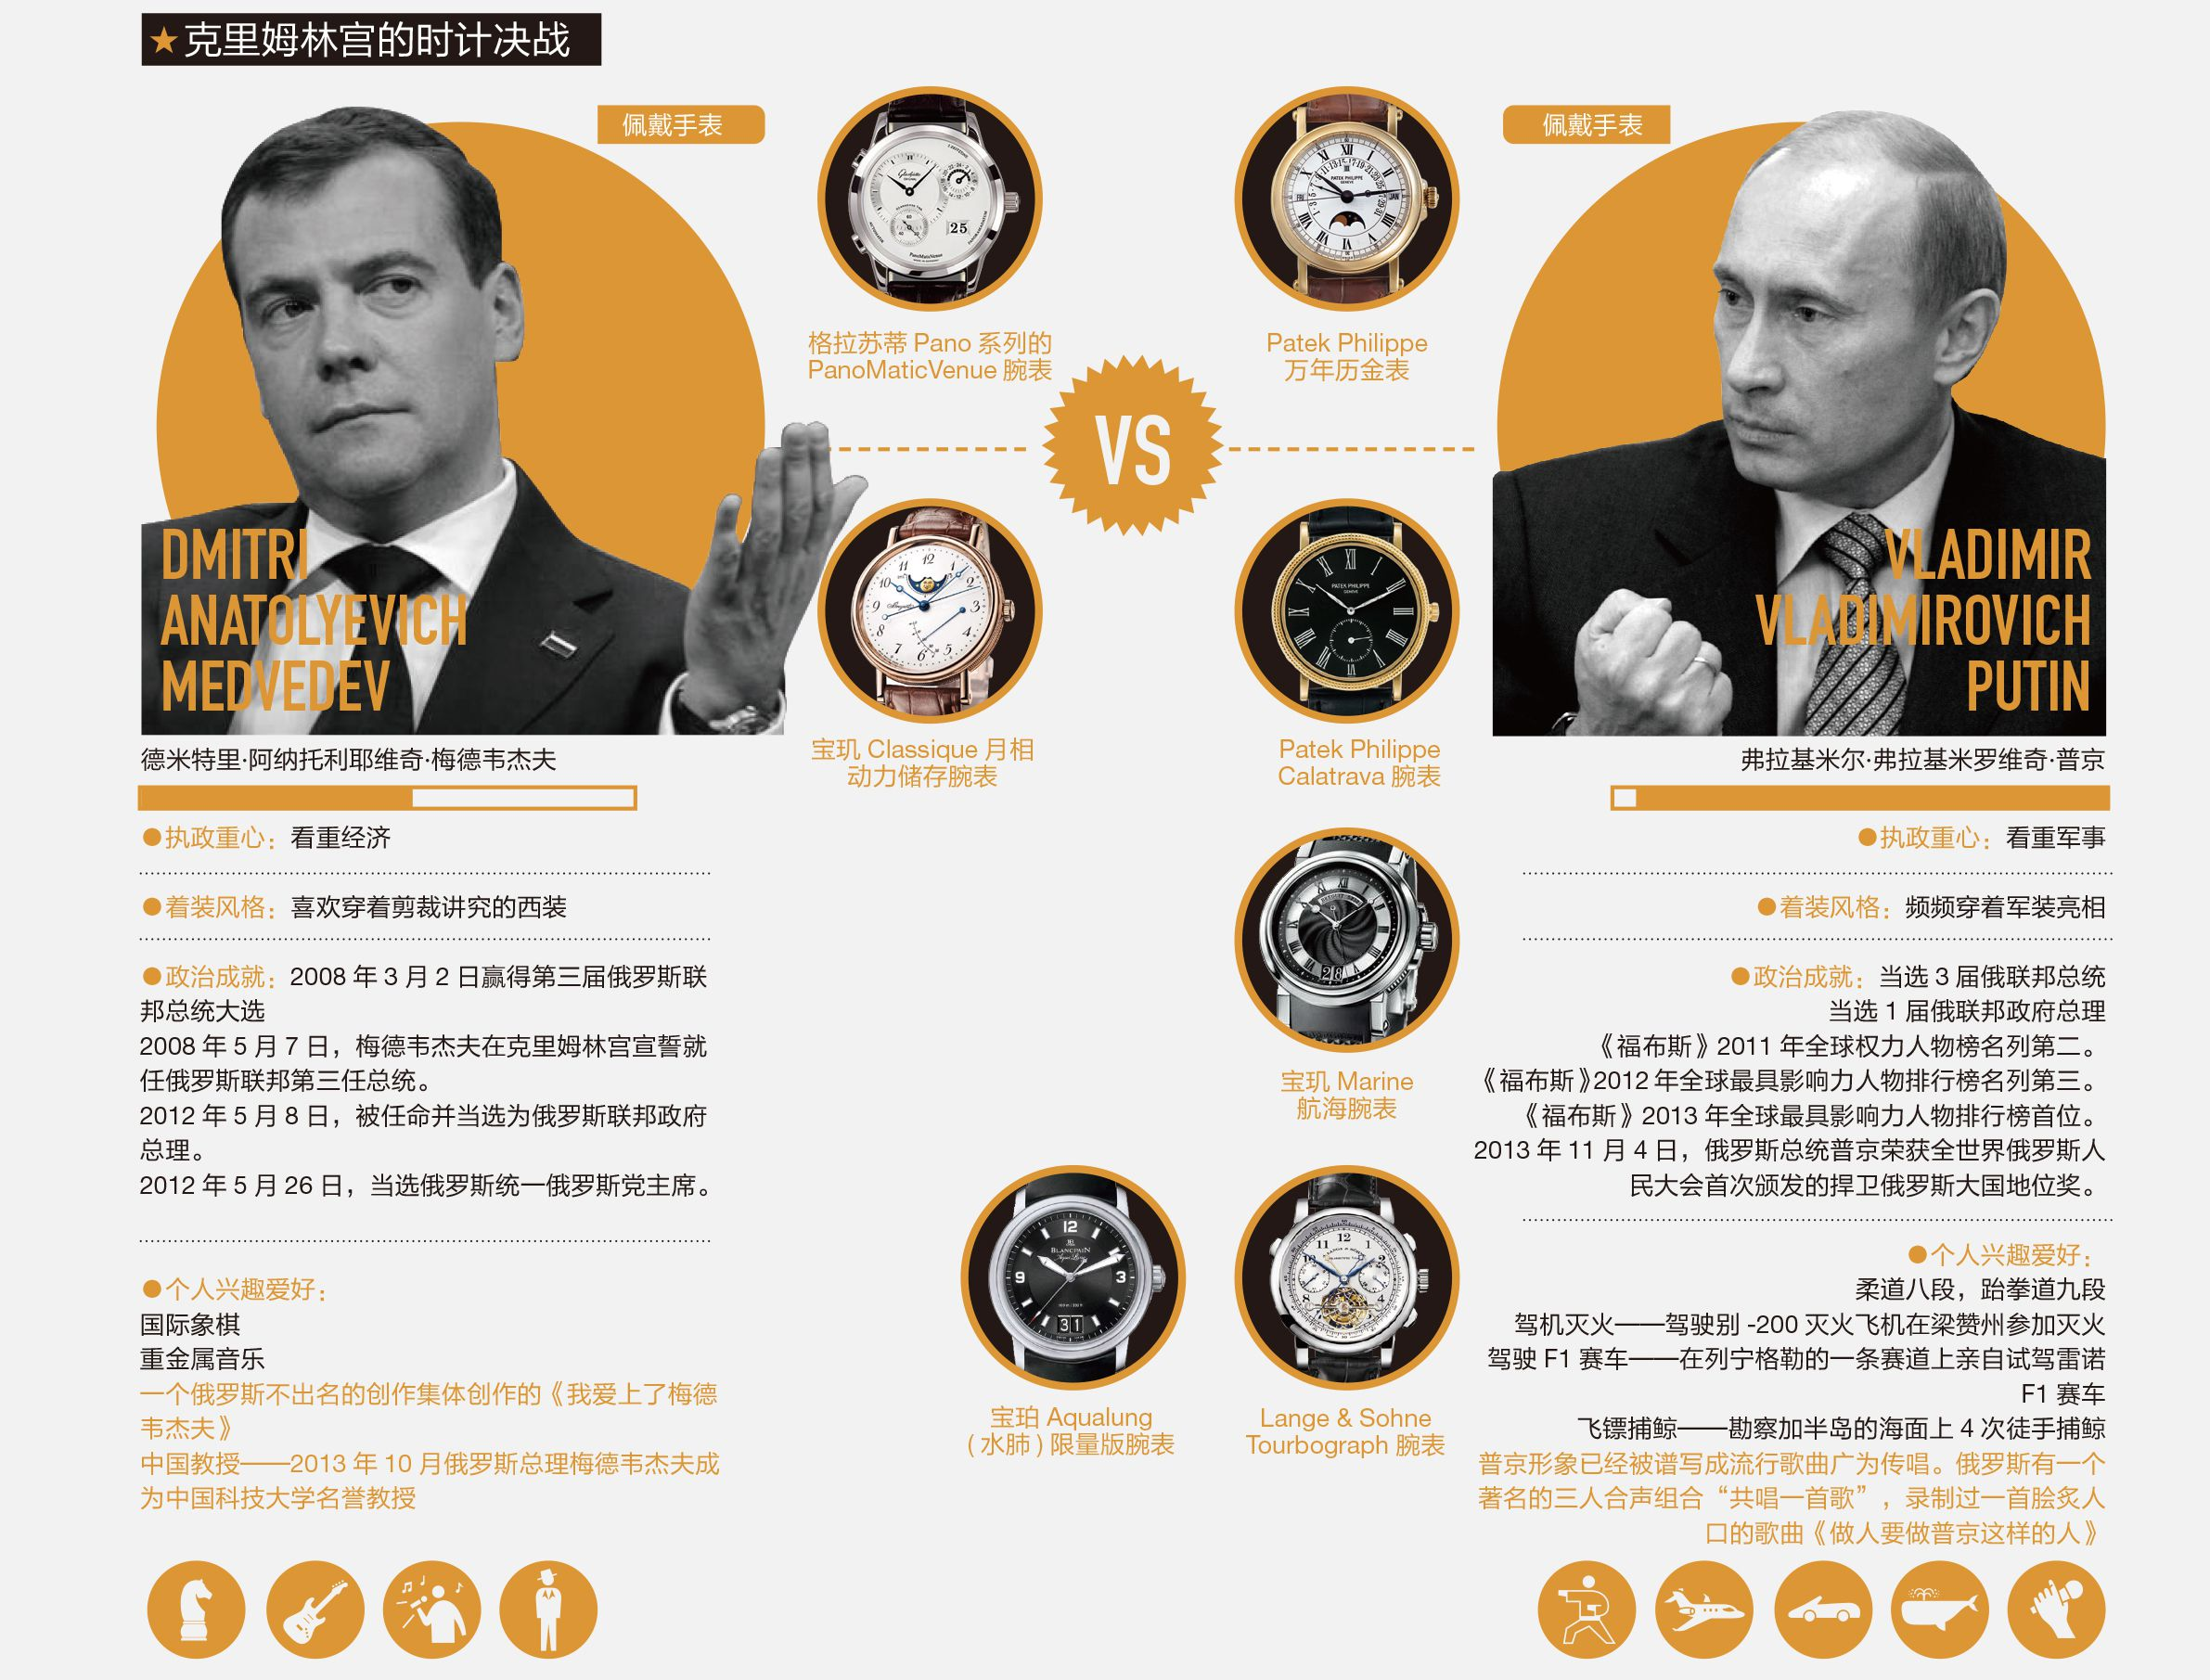 WATCHES AND POLITICS 腕上的政治角力